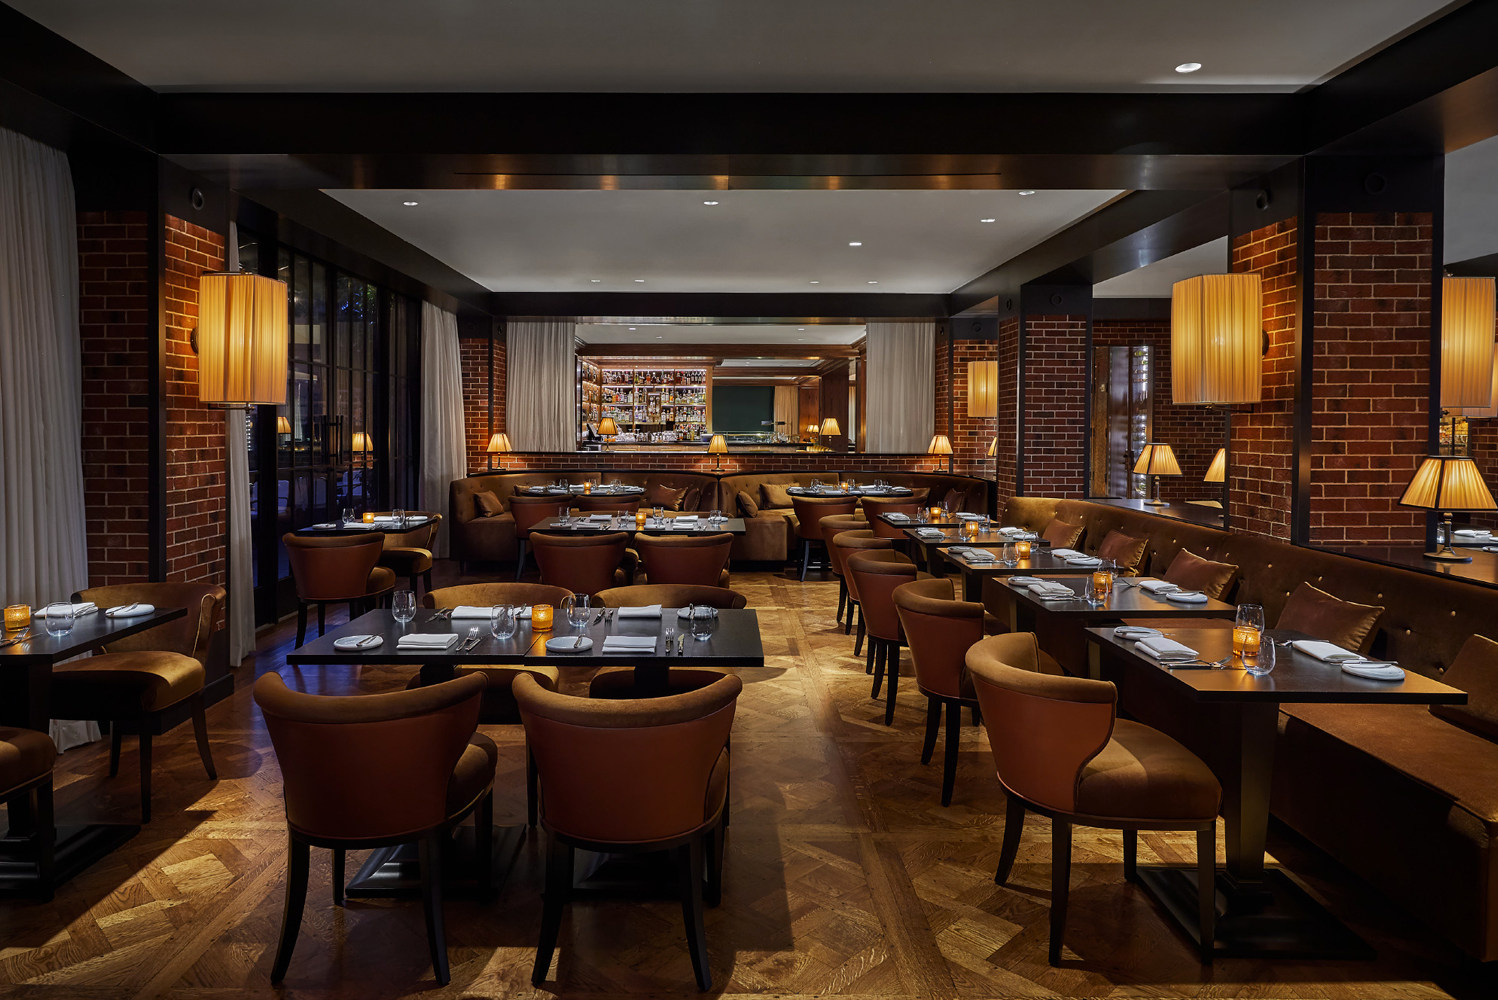 Cut D.C. – helmed by executive chef Andrew Skala – was designed by French architect, interior designer and landscape artist Jacques Garcia.